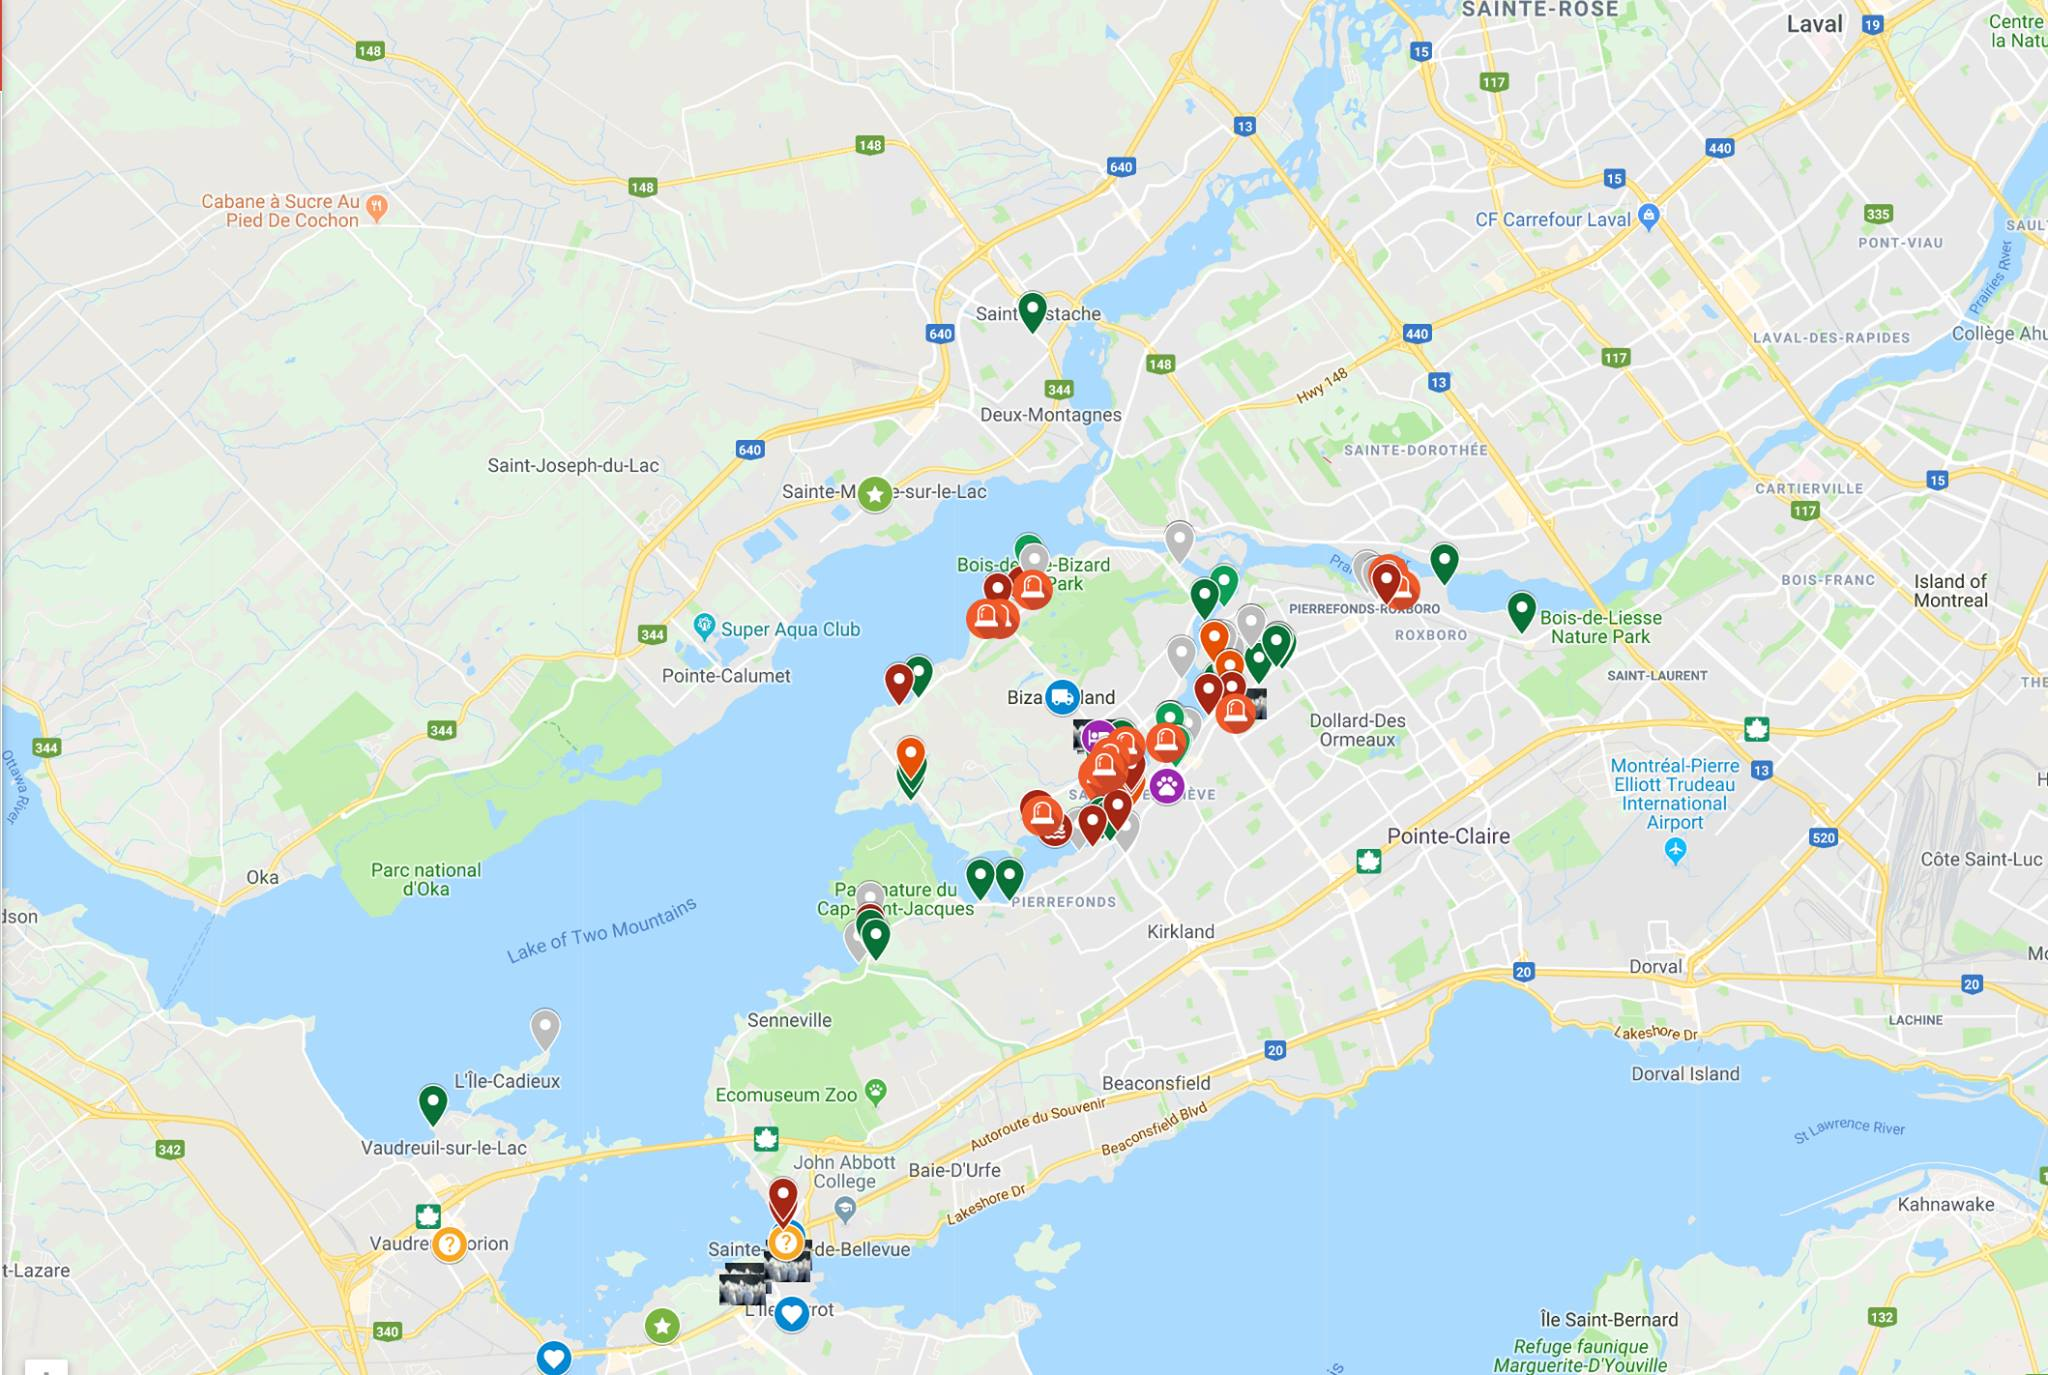 Google My Maps map of requests for volunteers Montreal spring floods